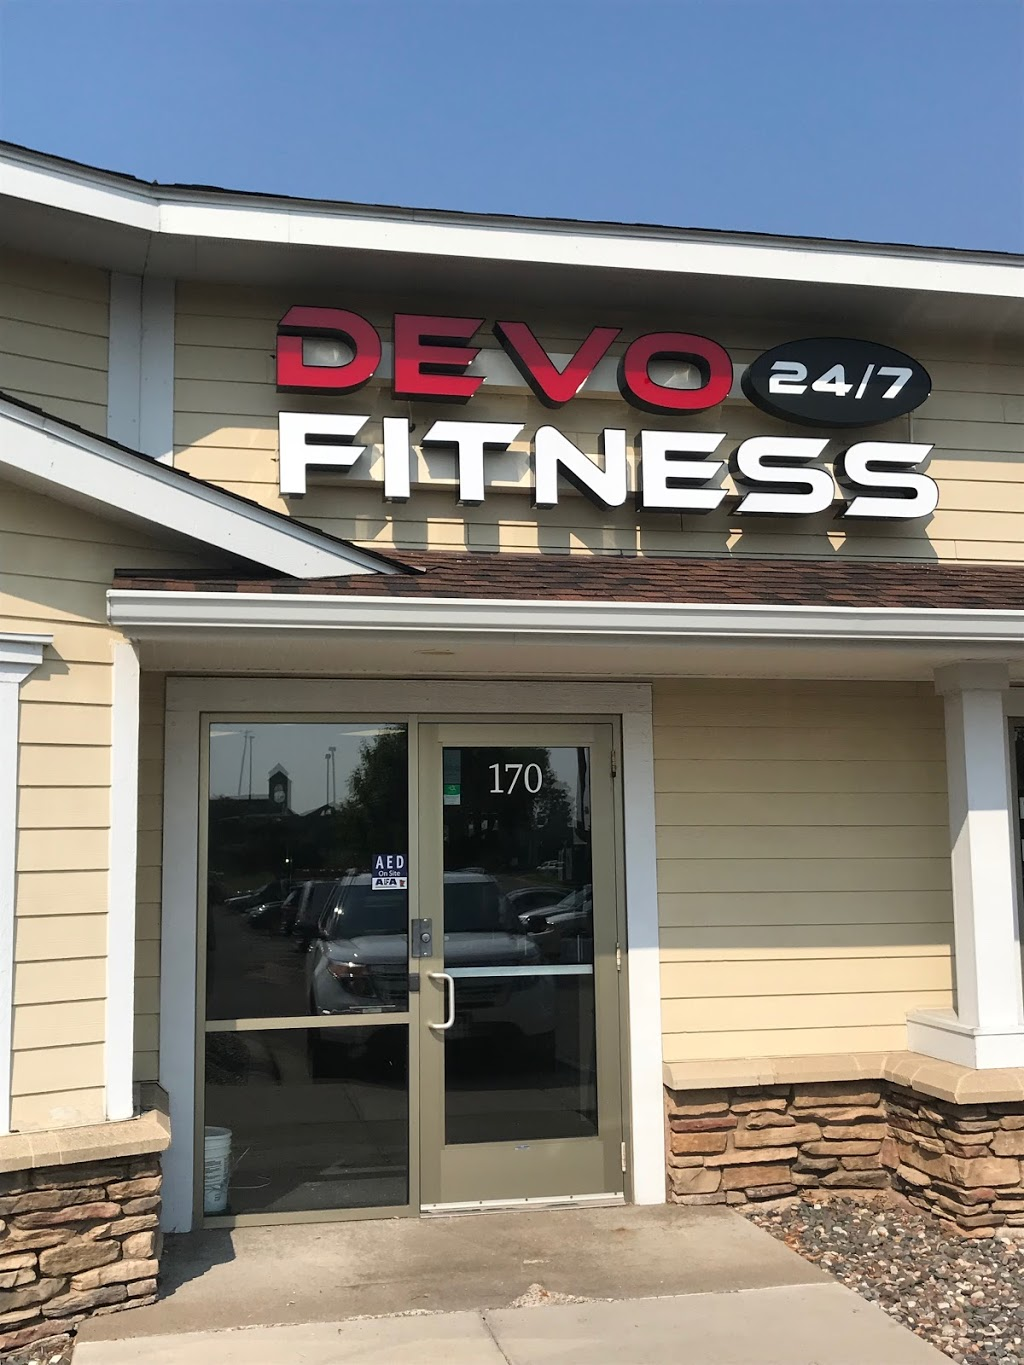 Devo Fitness - gym    Photo 2 of 8   Address: 455 99th Ave NW #170, Coon Rapids, MN 55433, USA   Phone: (763) 762-6914